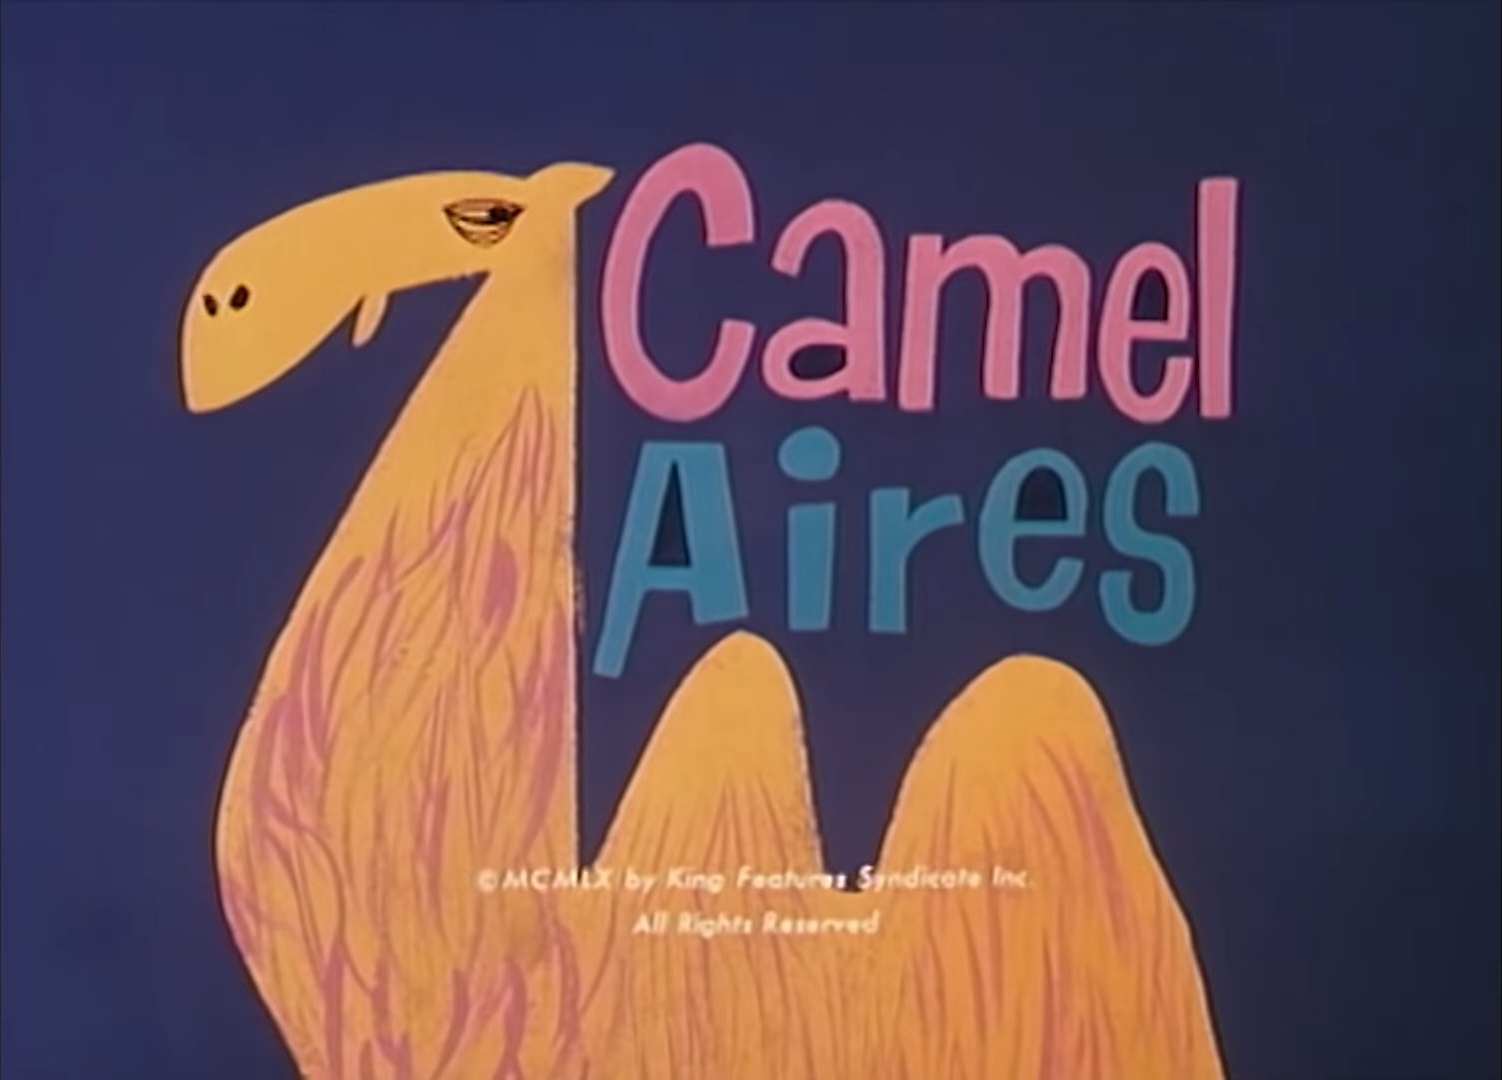 Camel Aires